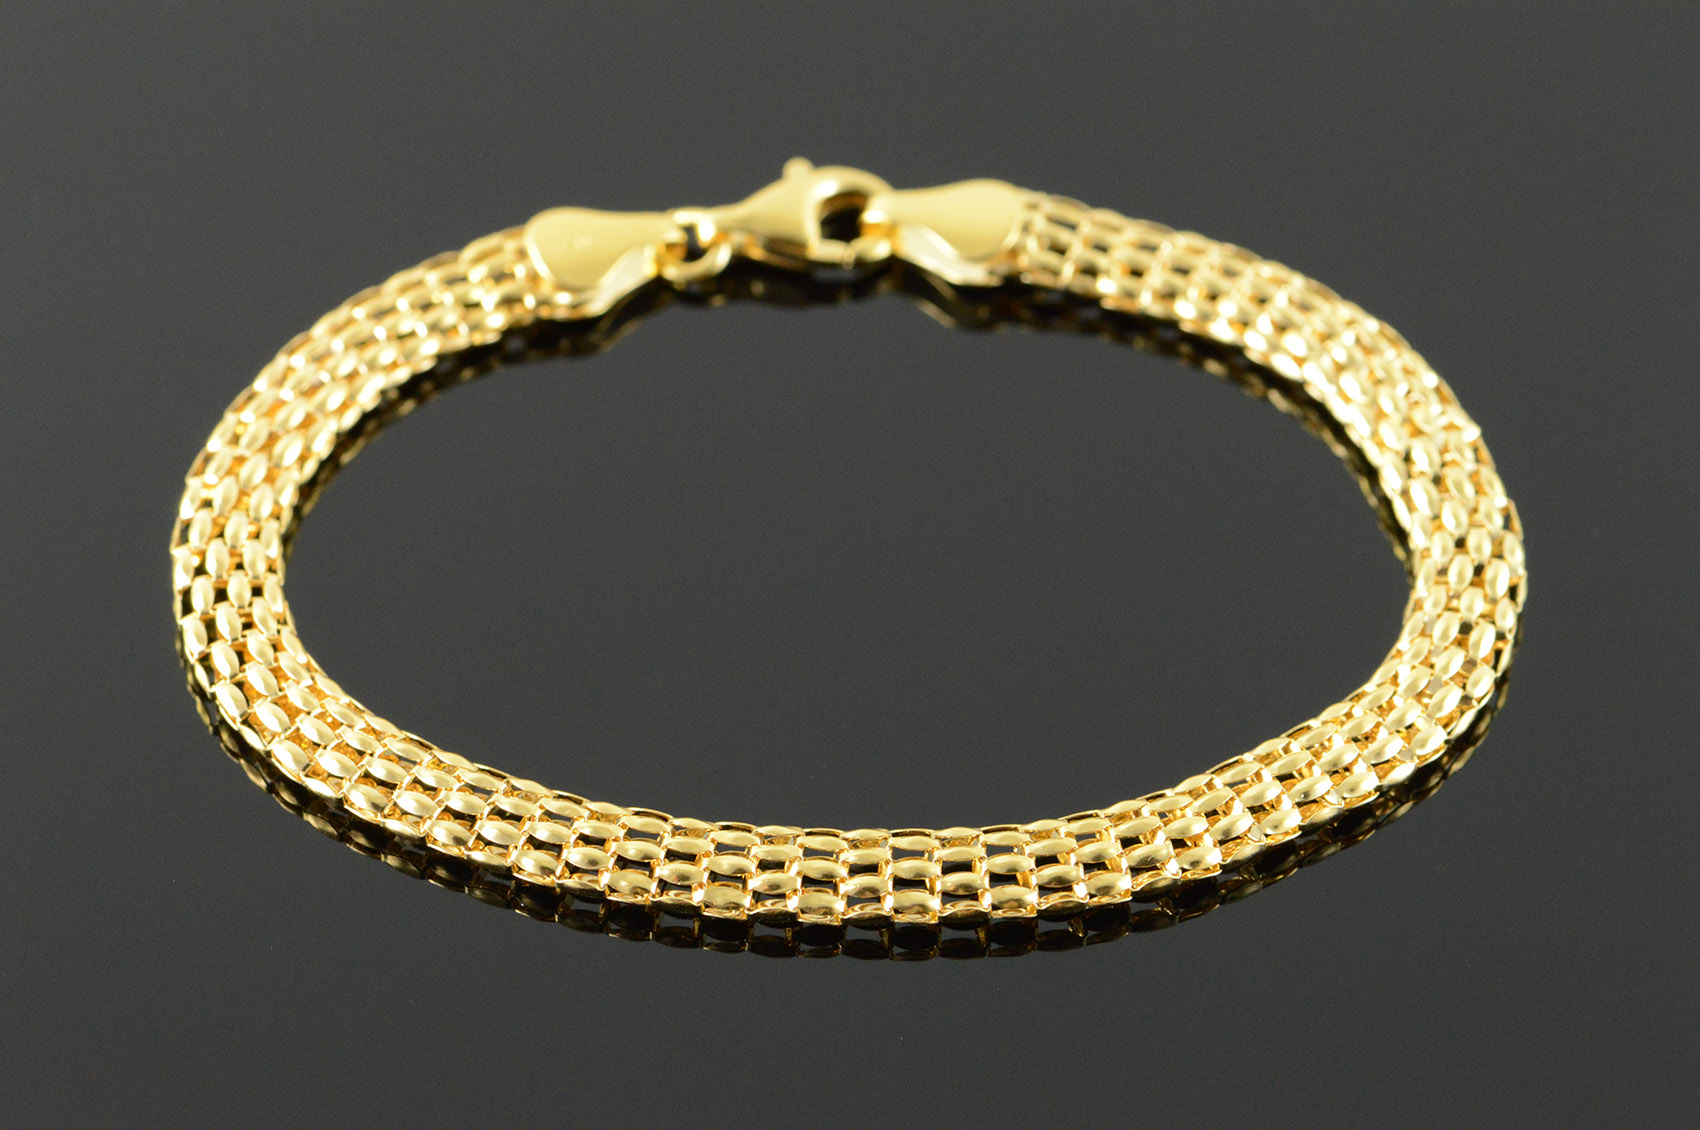 18k 6g Fancy Panther Link Chain Yellow Gold Bracelet 7